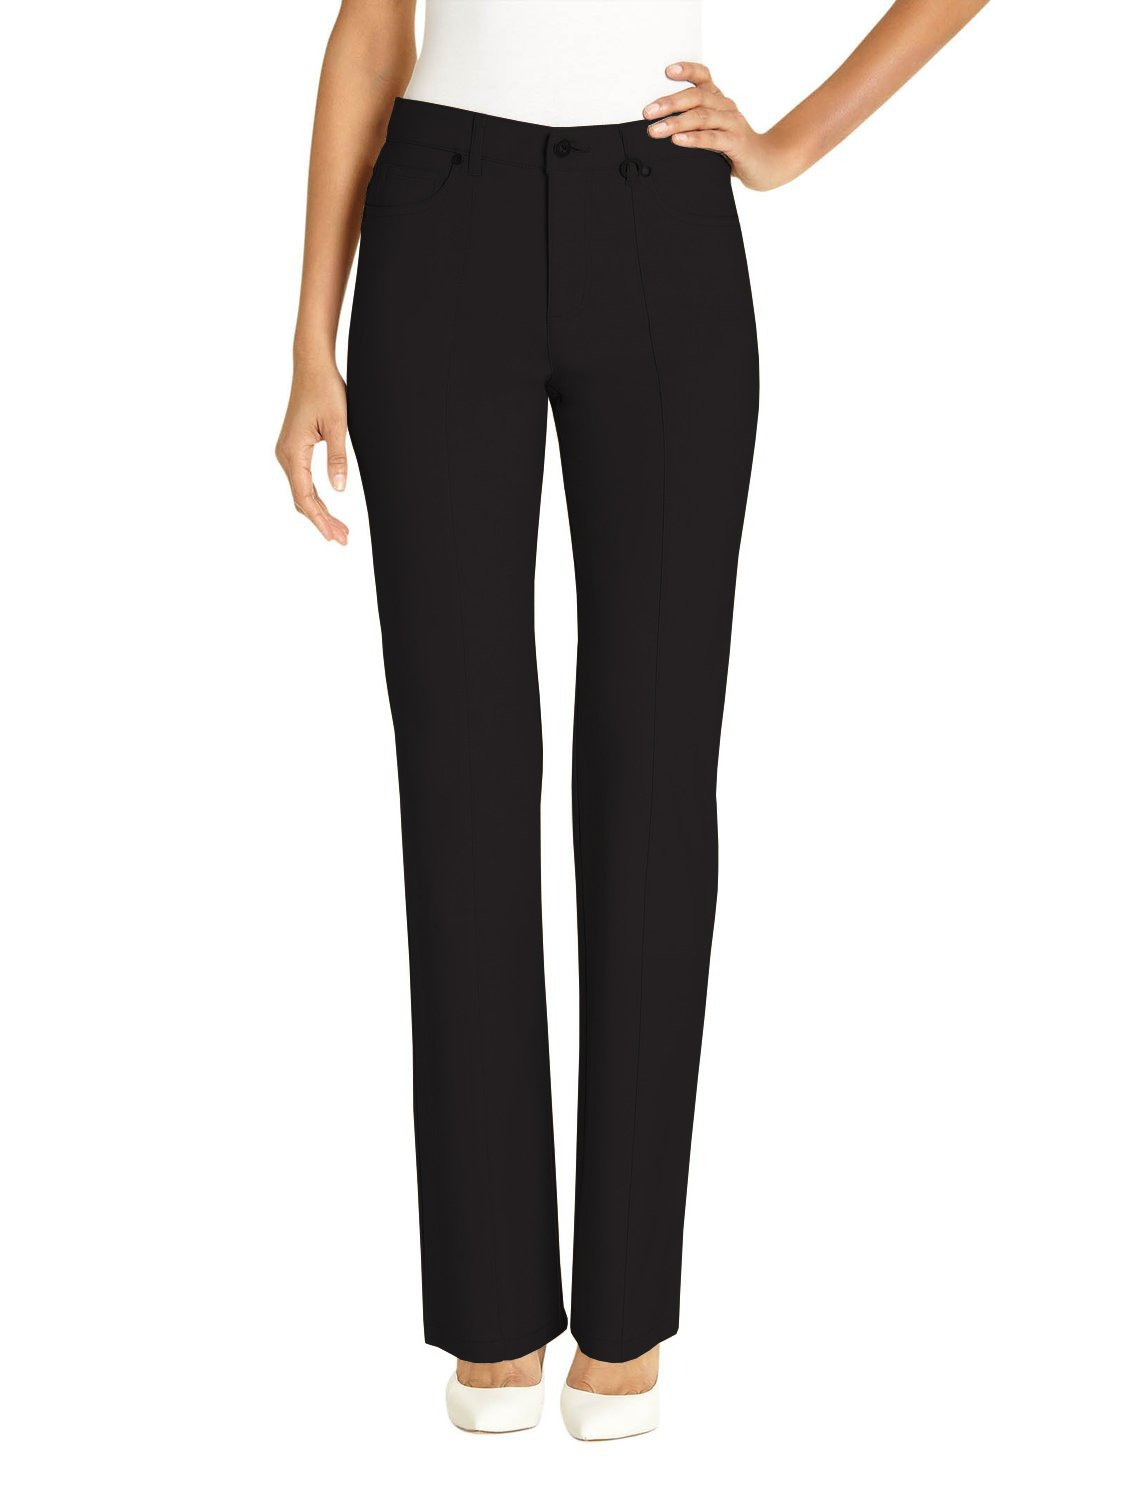 URREBEL pants for womens-Simon Chang Straight Leg Microtwill(Style#3-5302R),Black,Size 10 by URREBEL